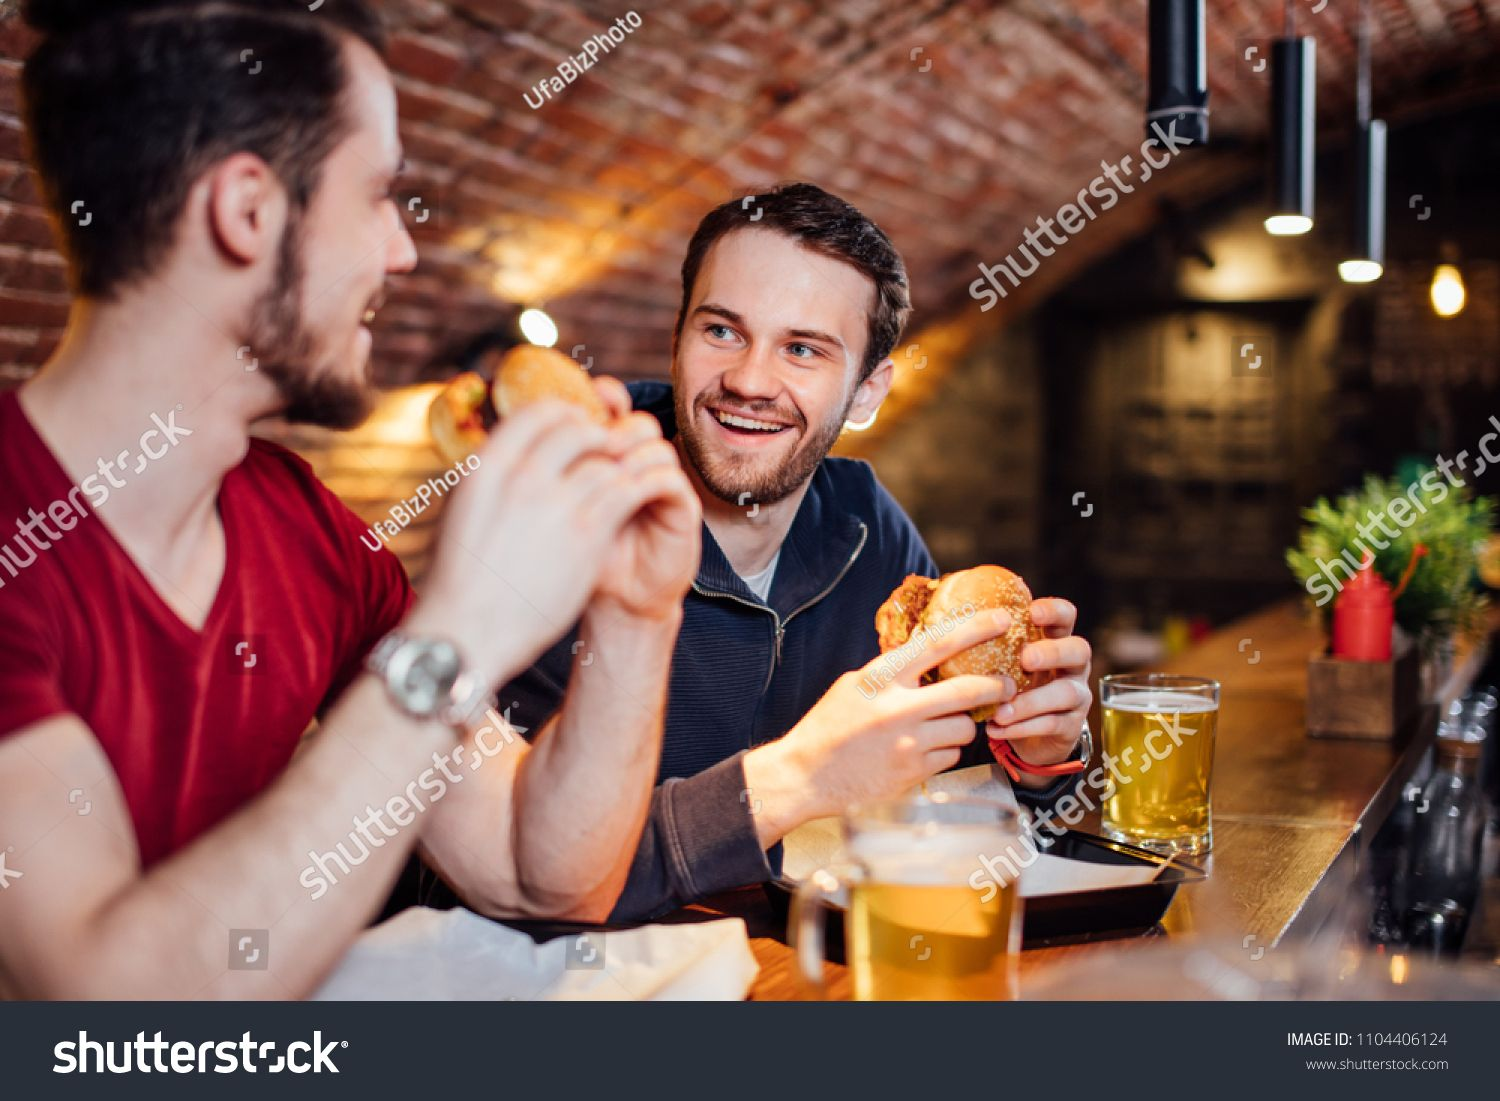 Two Happy Male Friends Having Dinner At Popular Burger Bar Young People Sitting Talking And Eating Burgers Drinking Beer Drinking Beer People Sitting People